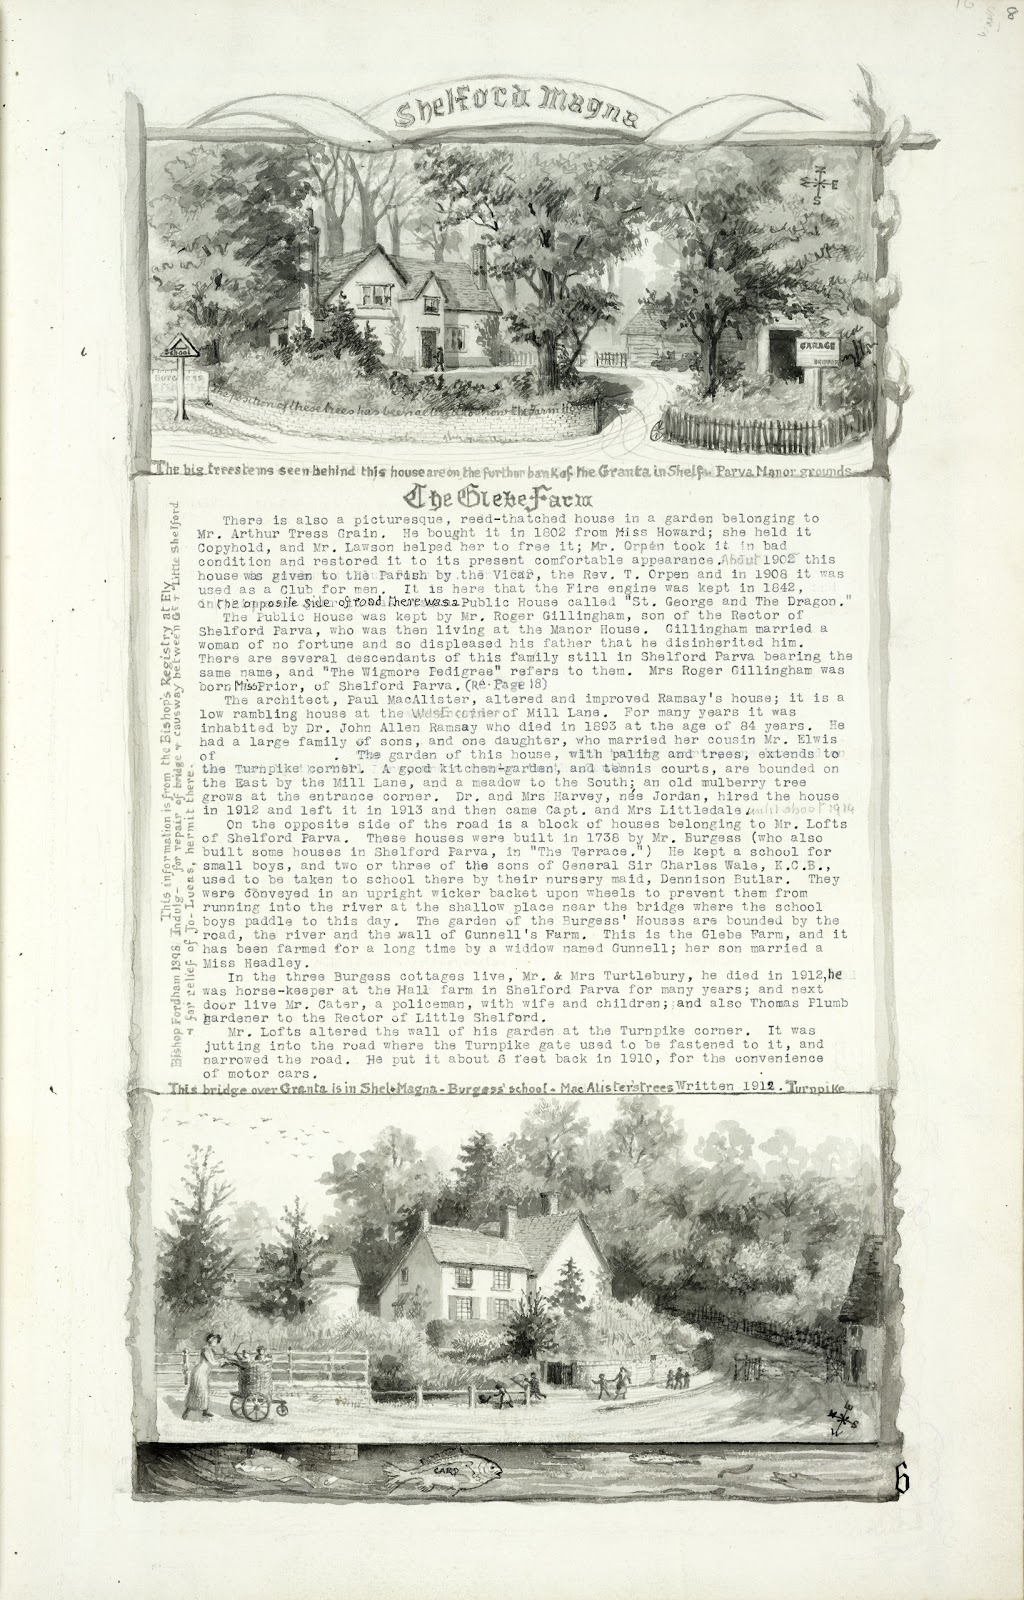 A Record of Shelford Parva by Fanny Wale P6 fo. 8, page 6: At the top of the page is a black and white watercolour of the Glebe farm and a description of its appearance, inhabitants and alterations 1912. At the bottom of the page is a black and white watercolour of the bridge over Granta and Burgess' school. [fo. 6]